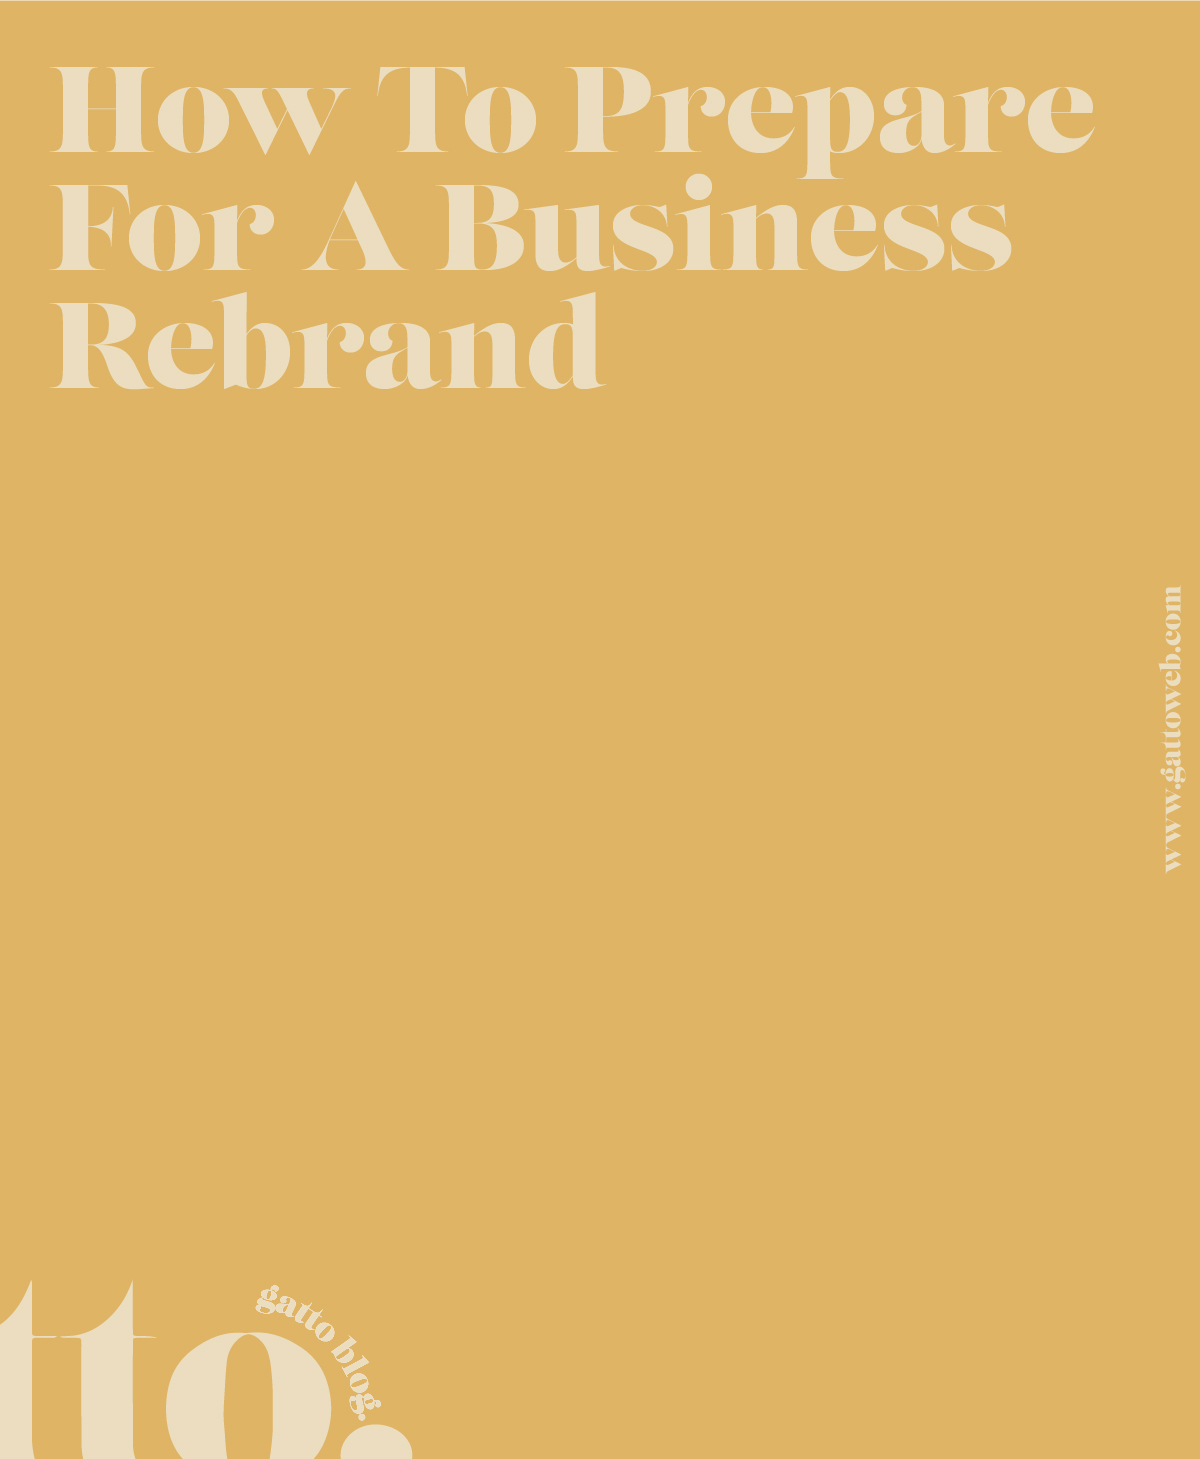 How To Prepare For A Business Rebrand.jpg